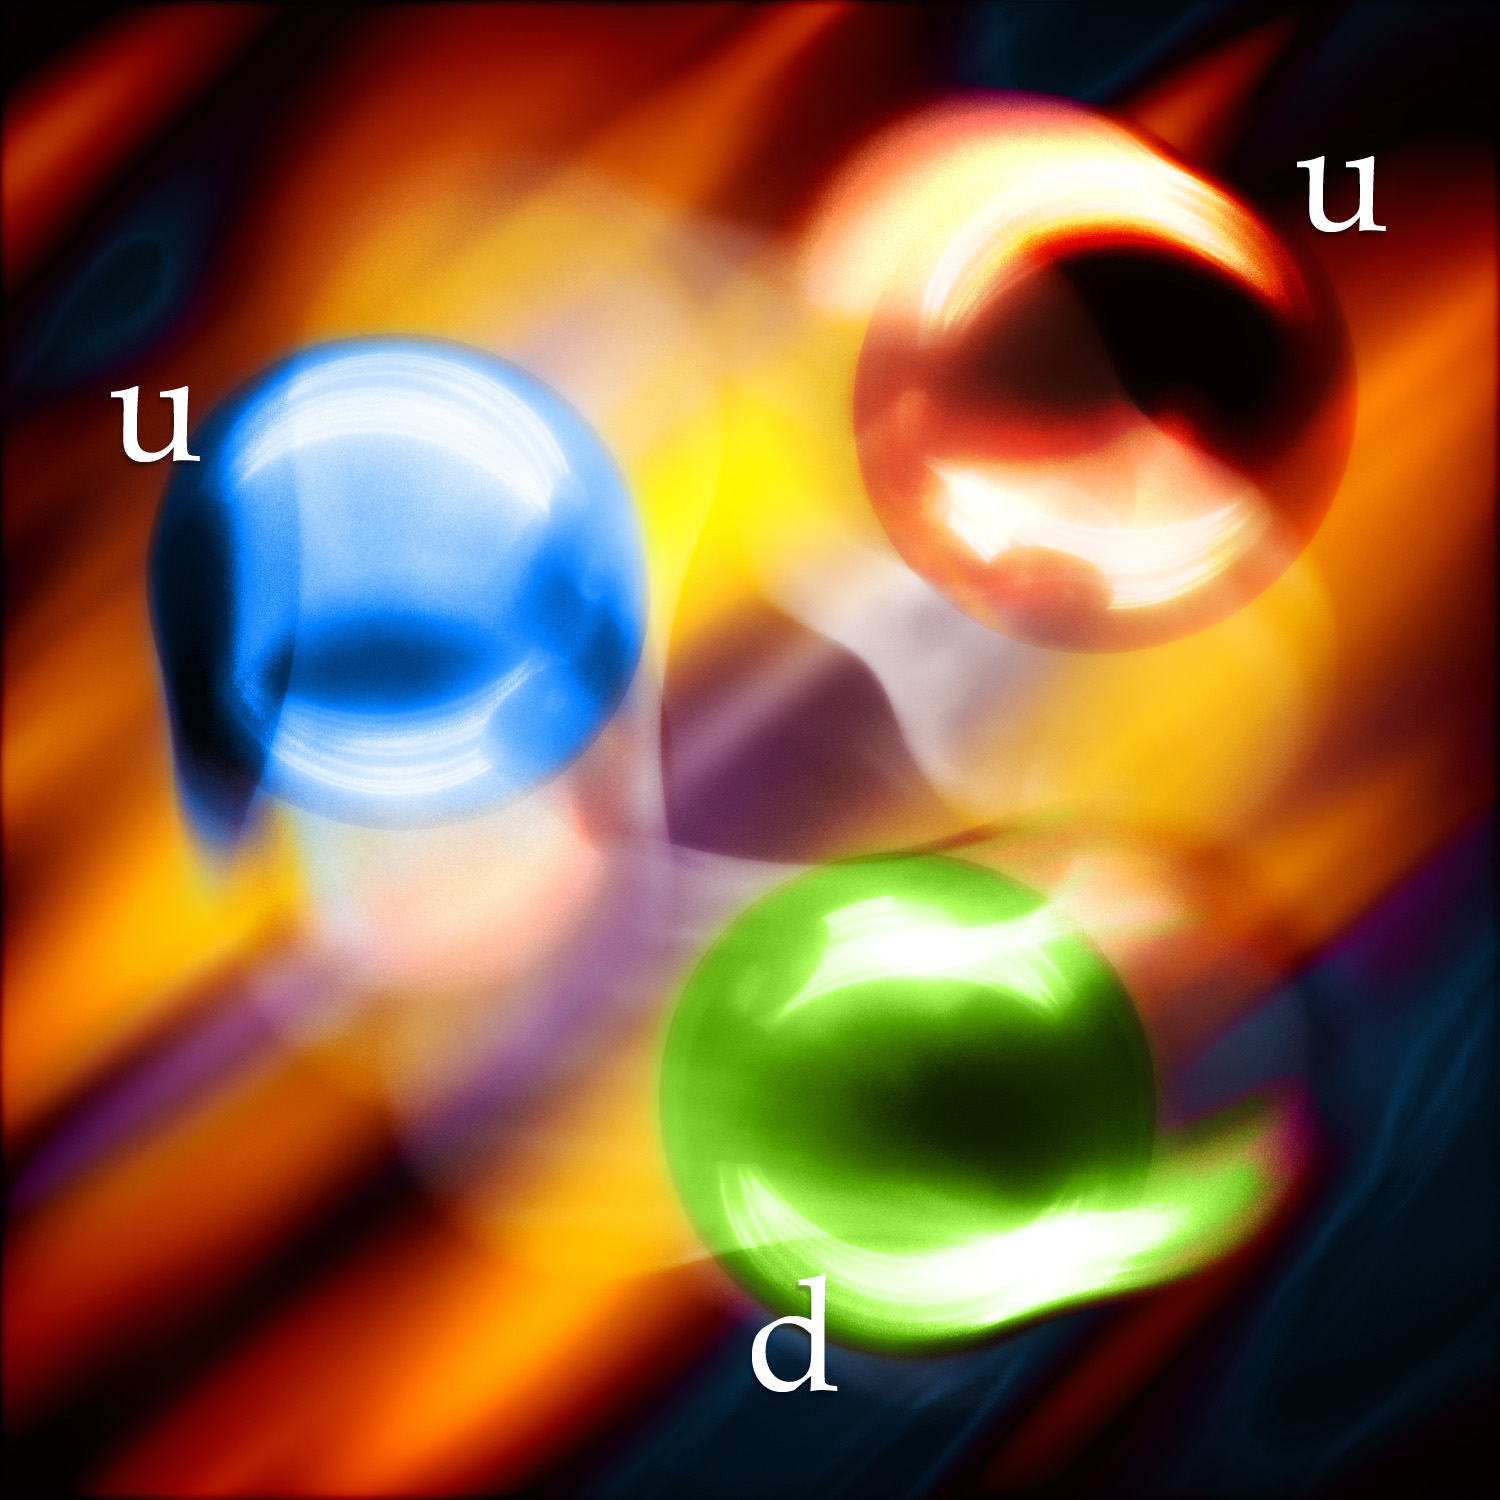 Virtual proton: 2 up quarks and 1 down quark of cycling colors